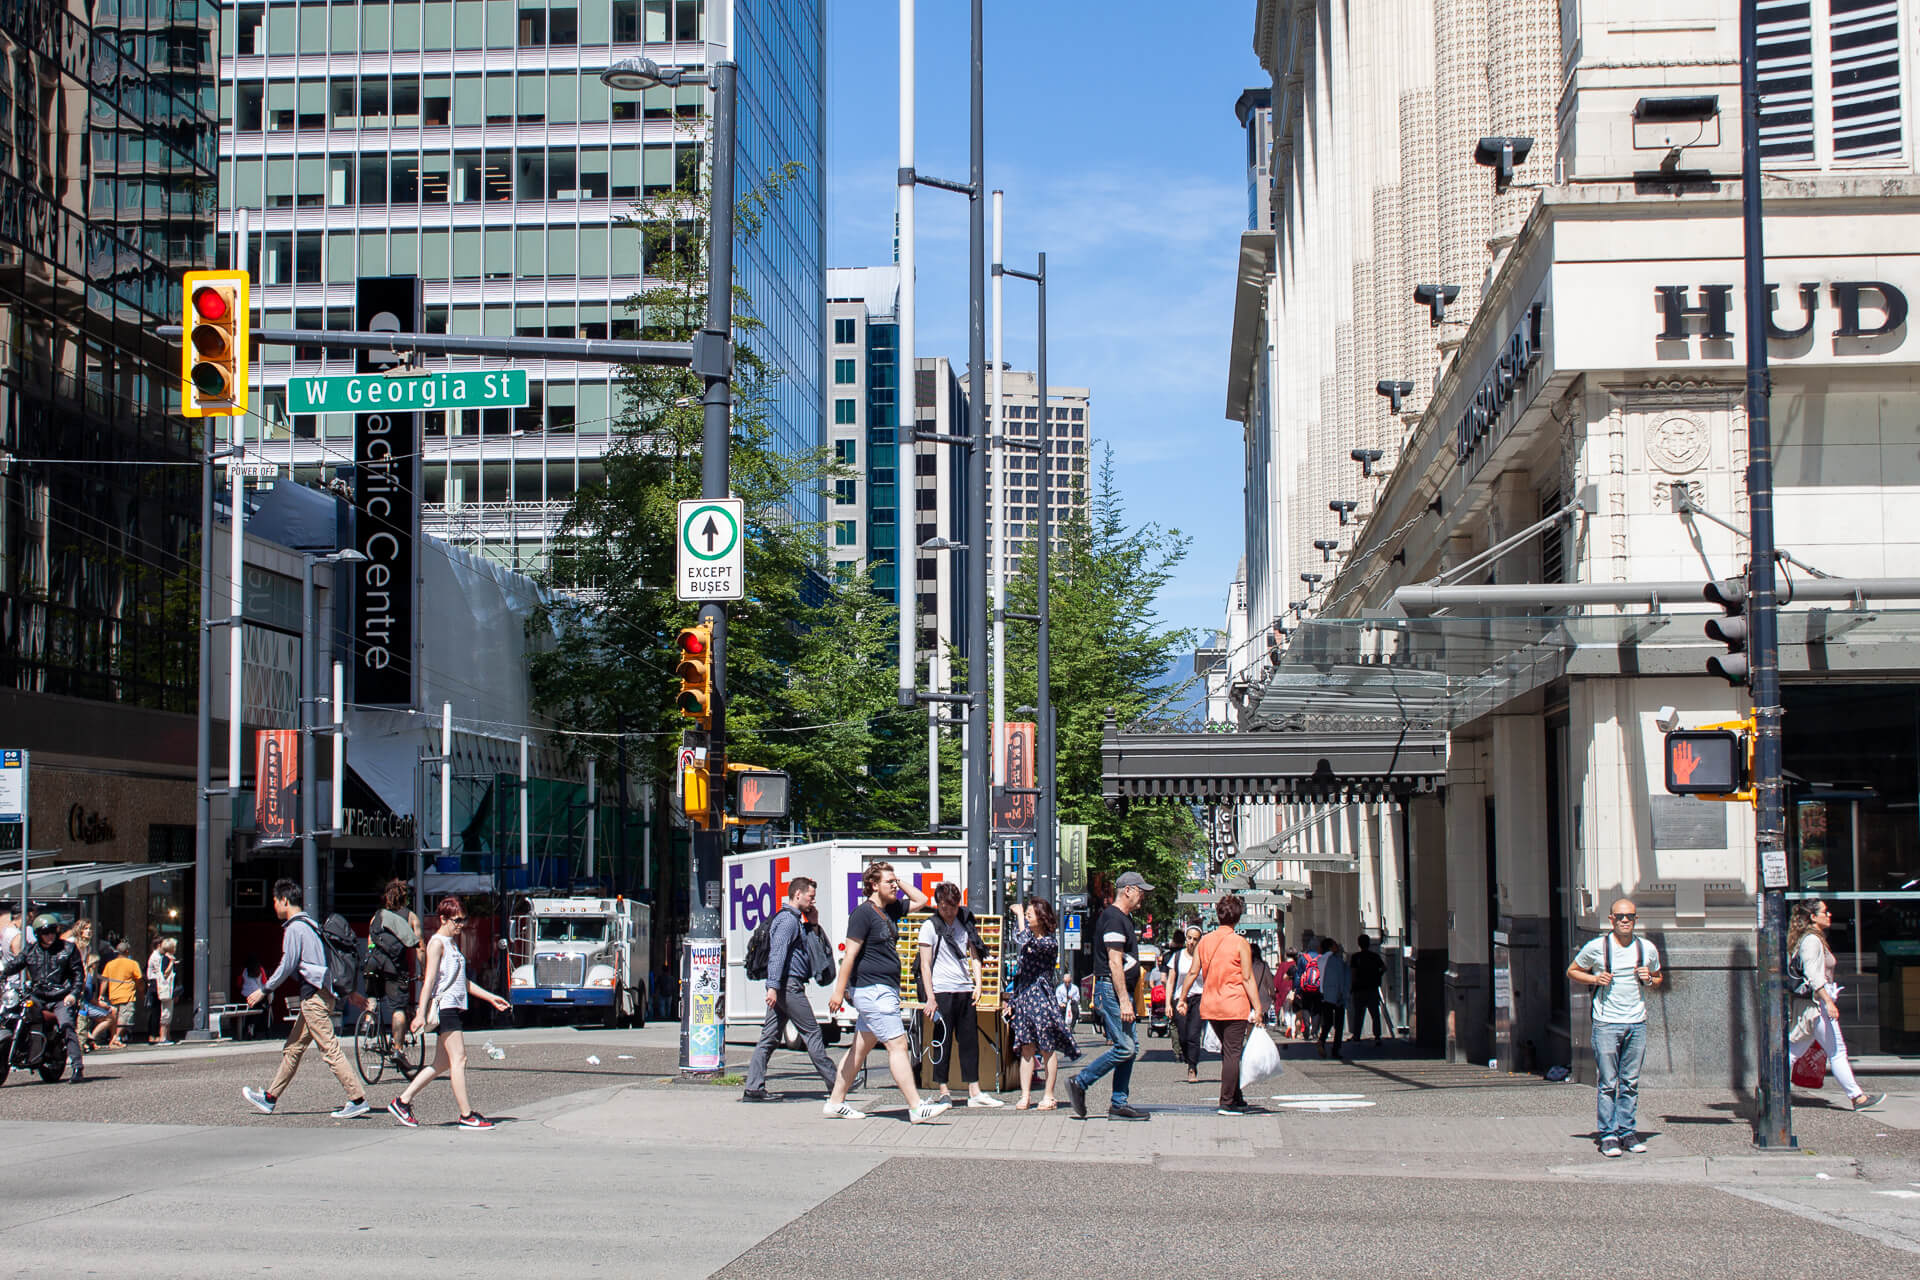 Mid-day bustle in Vancouver's downtown central business district.